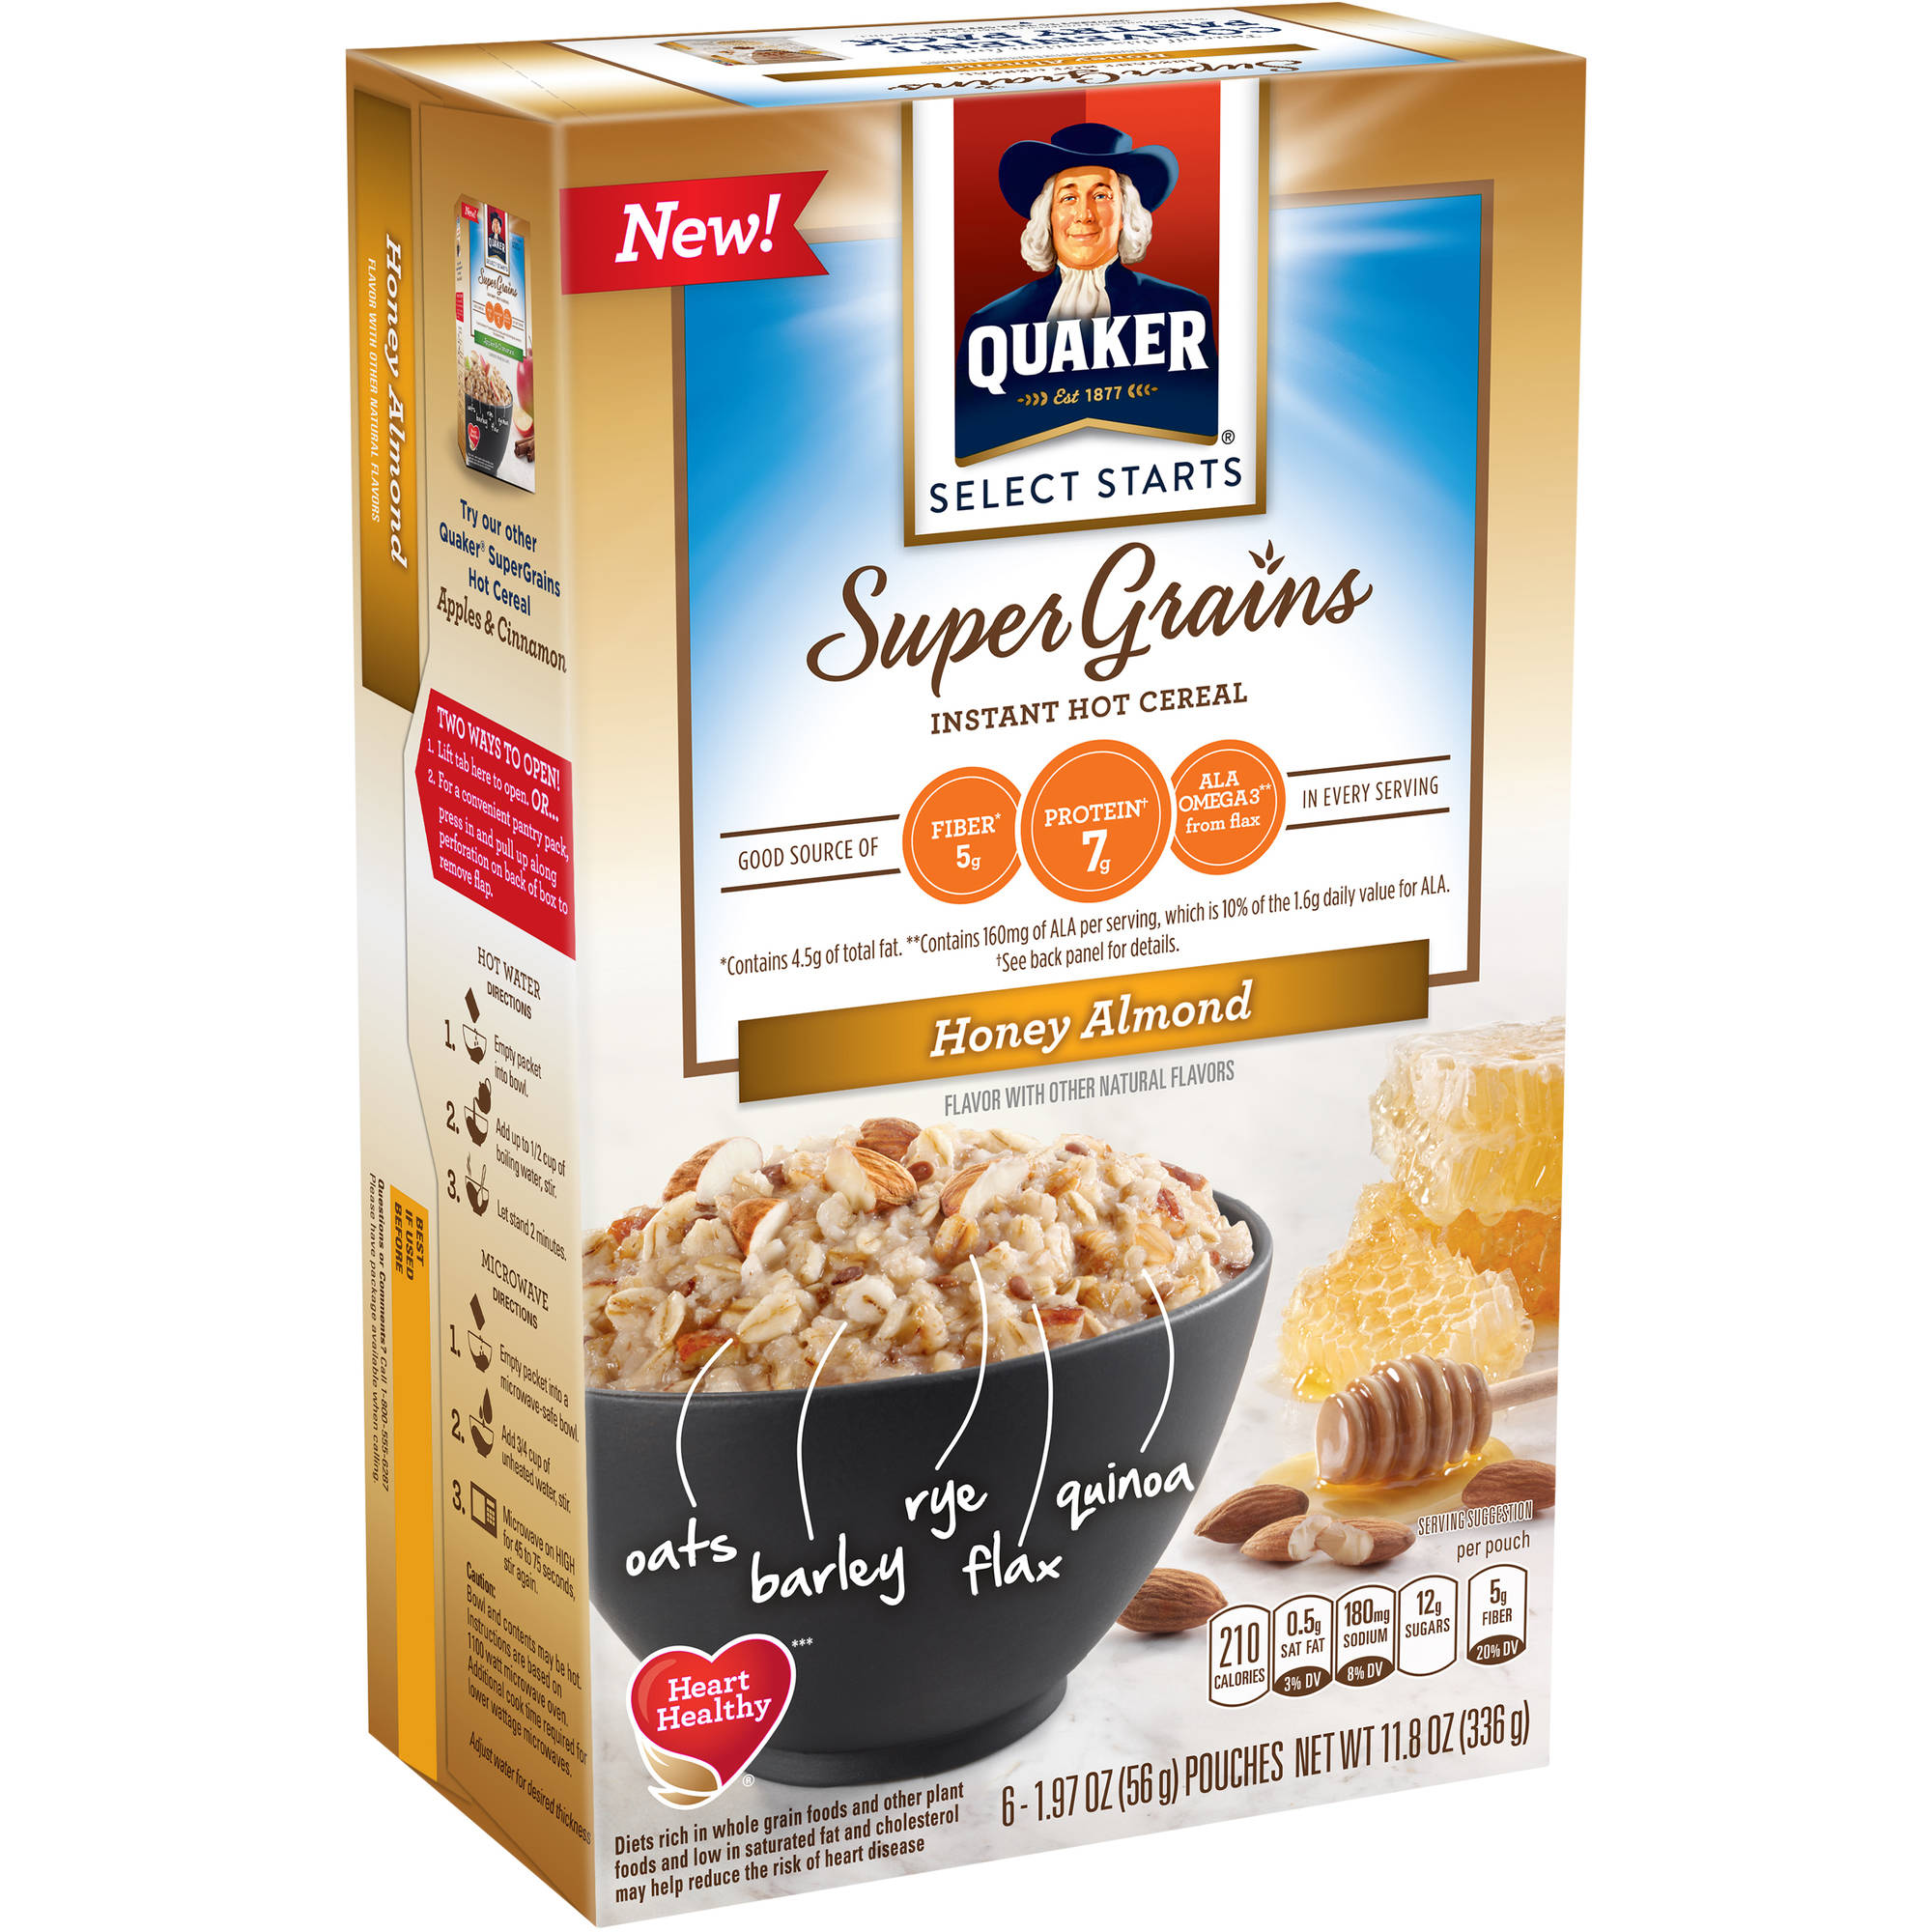 Quaker Select Starts Super Grains Honey Almond Instant Hot Cereal, 1.97 oz, 6 count